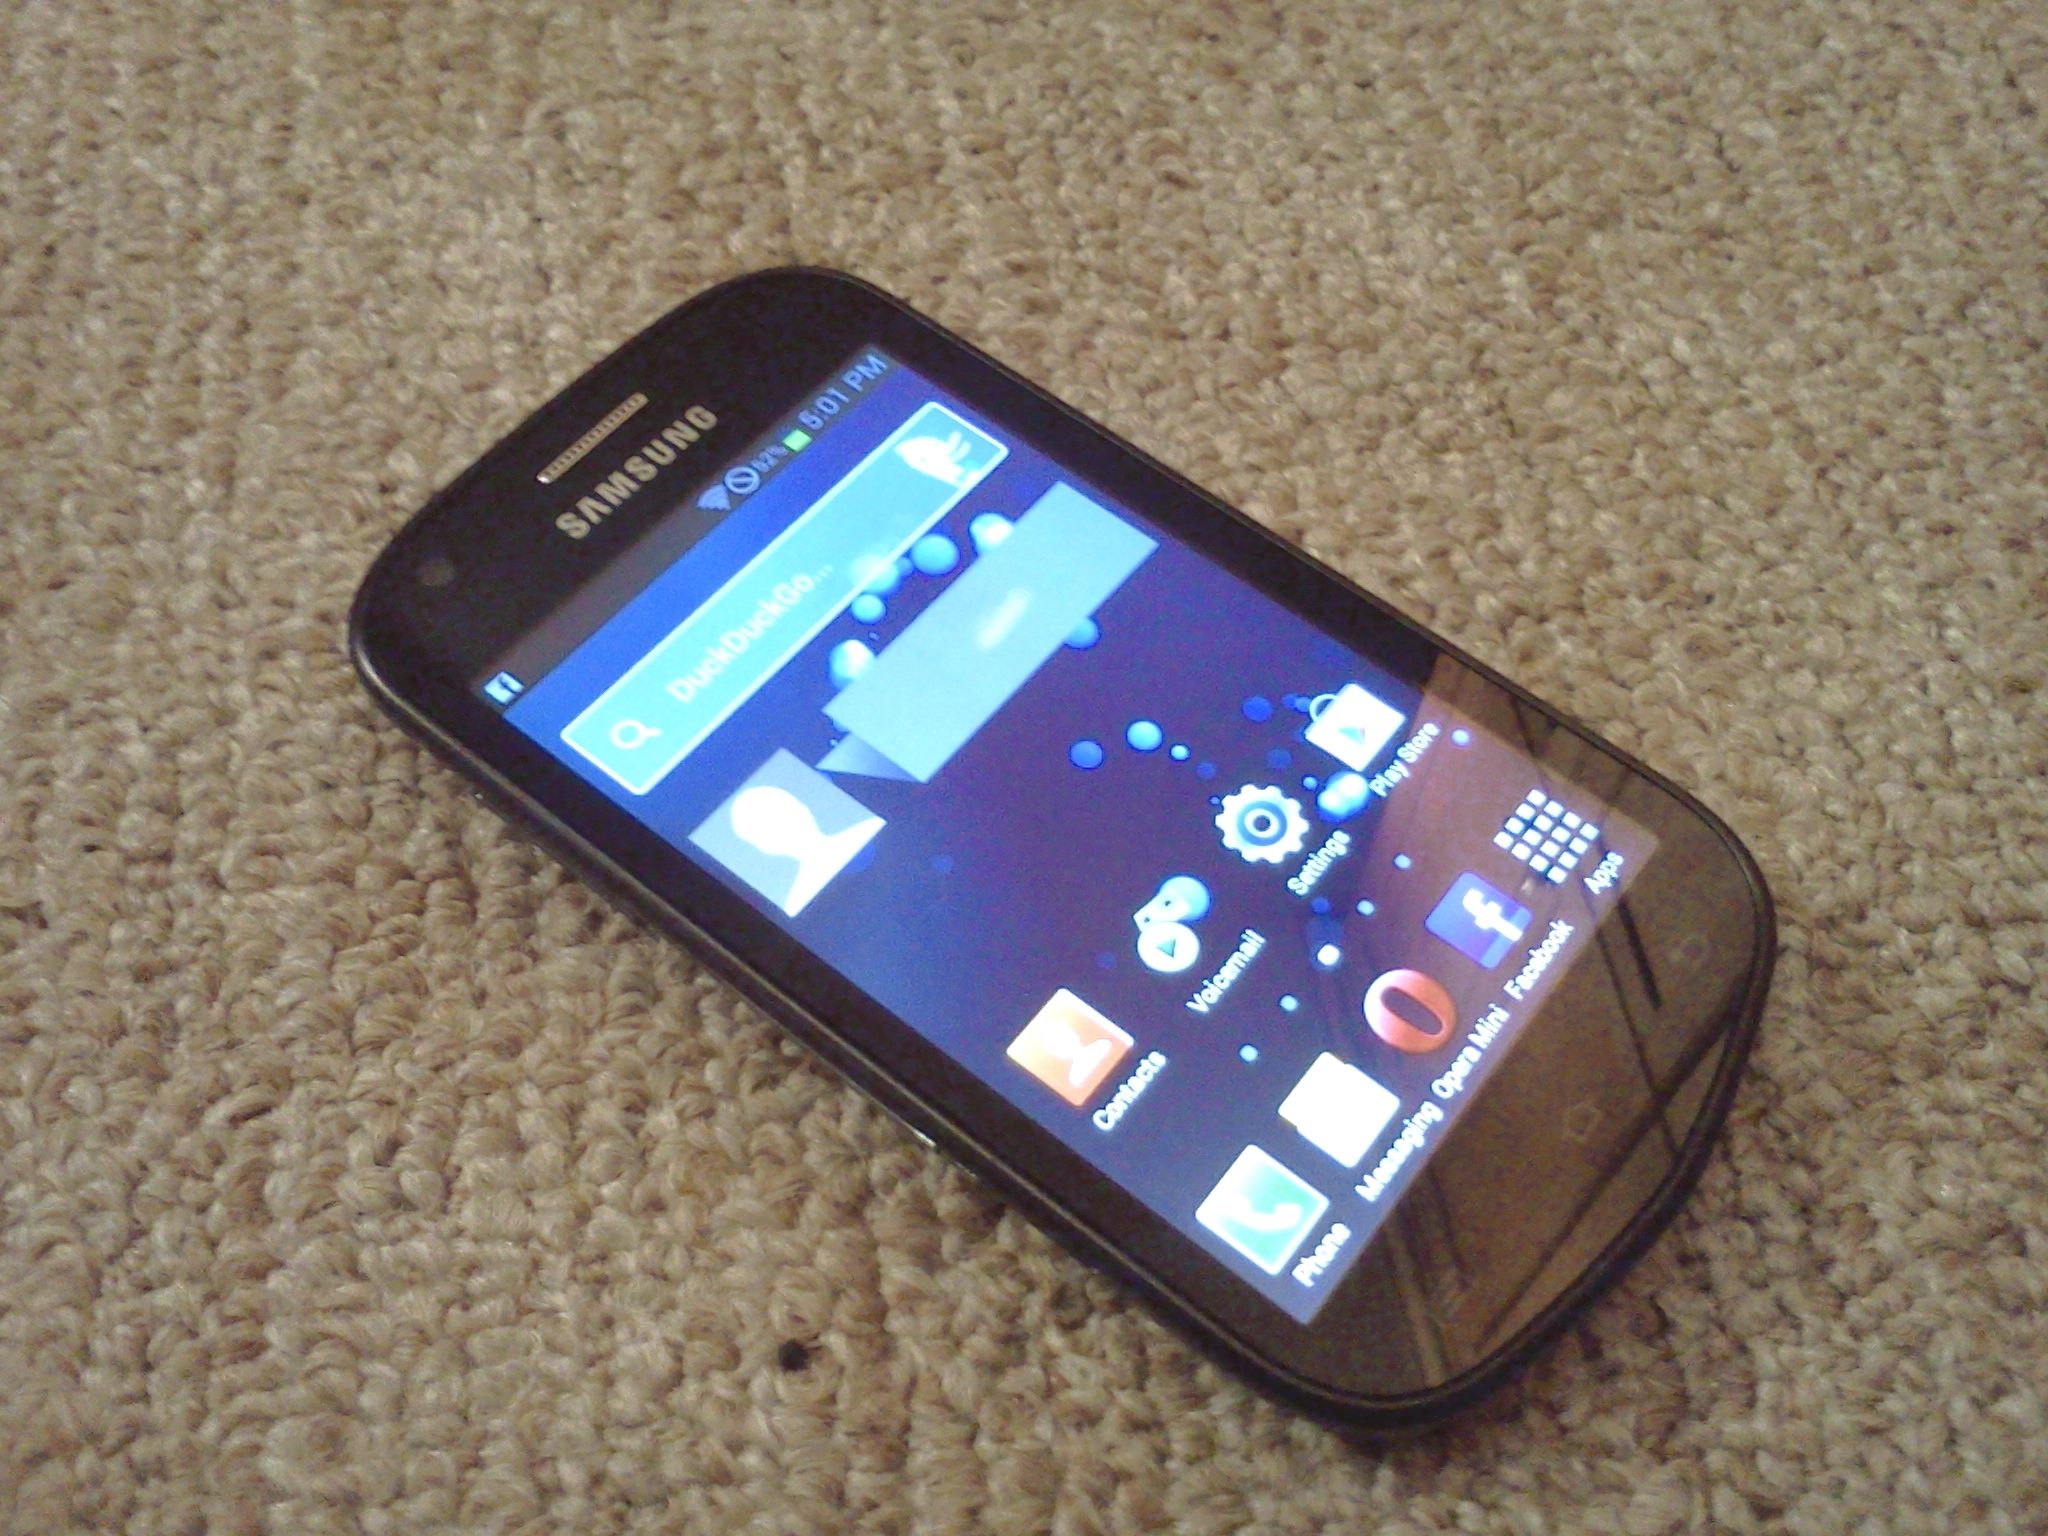 The Samsung Galaxy Reverb, with several new apps installed and the home screen rearranged. Hopefully the last photo to be taken with my old Optimus.